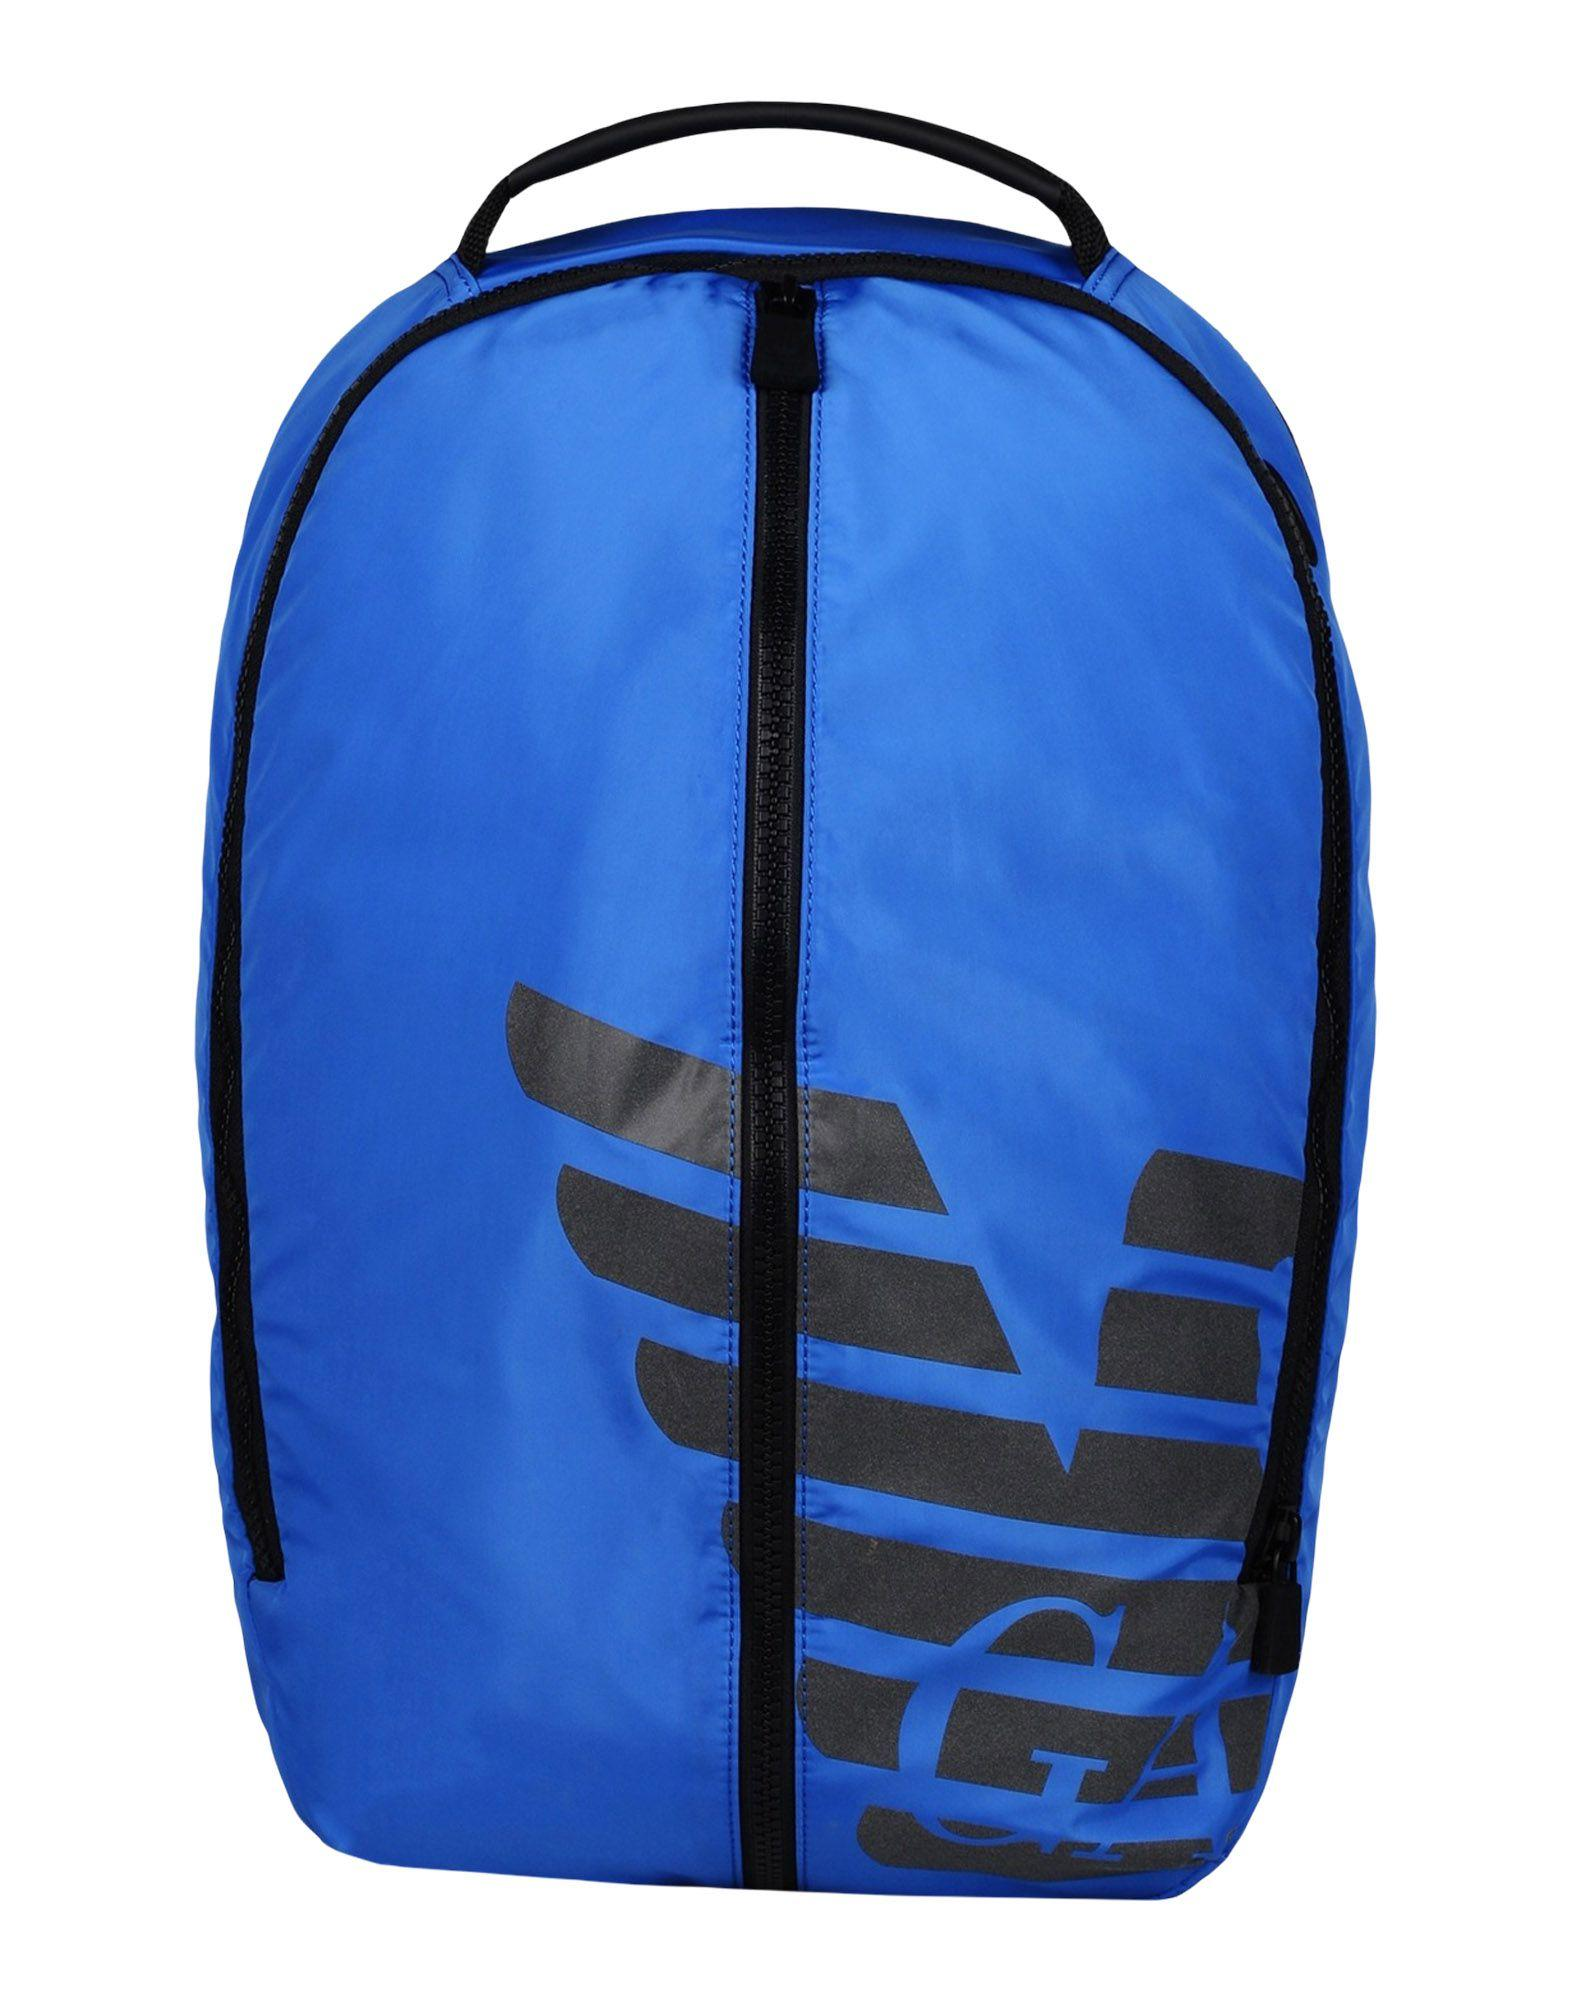 Emporio Armani Backpacks & Fanny Packs In Bright Blue